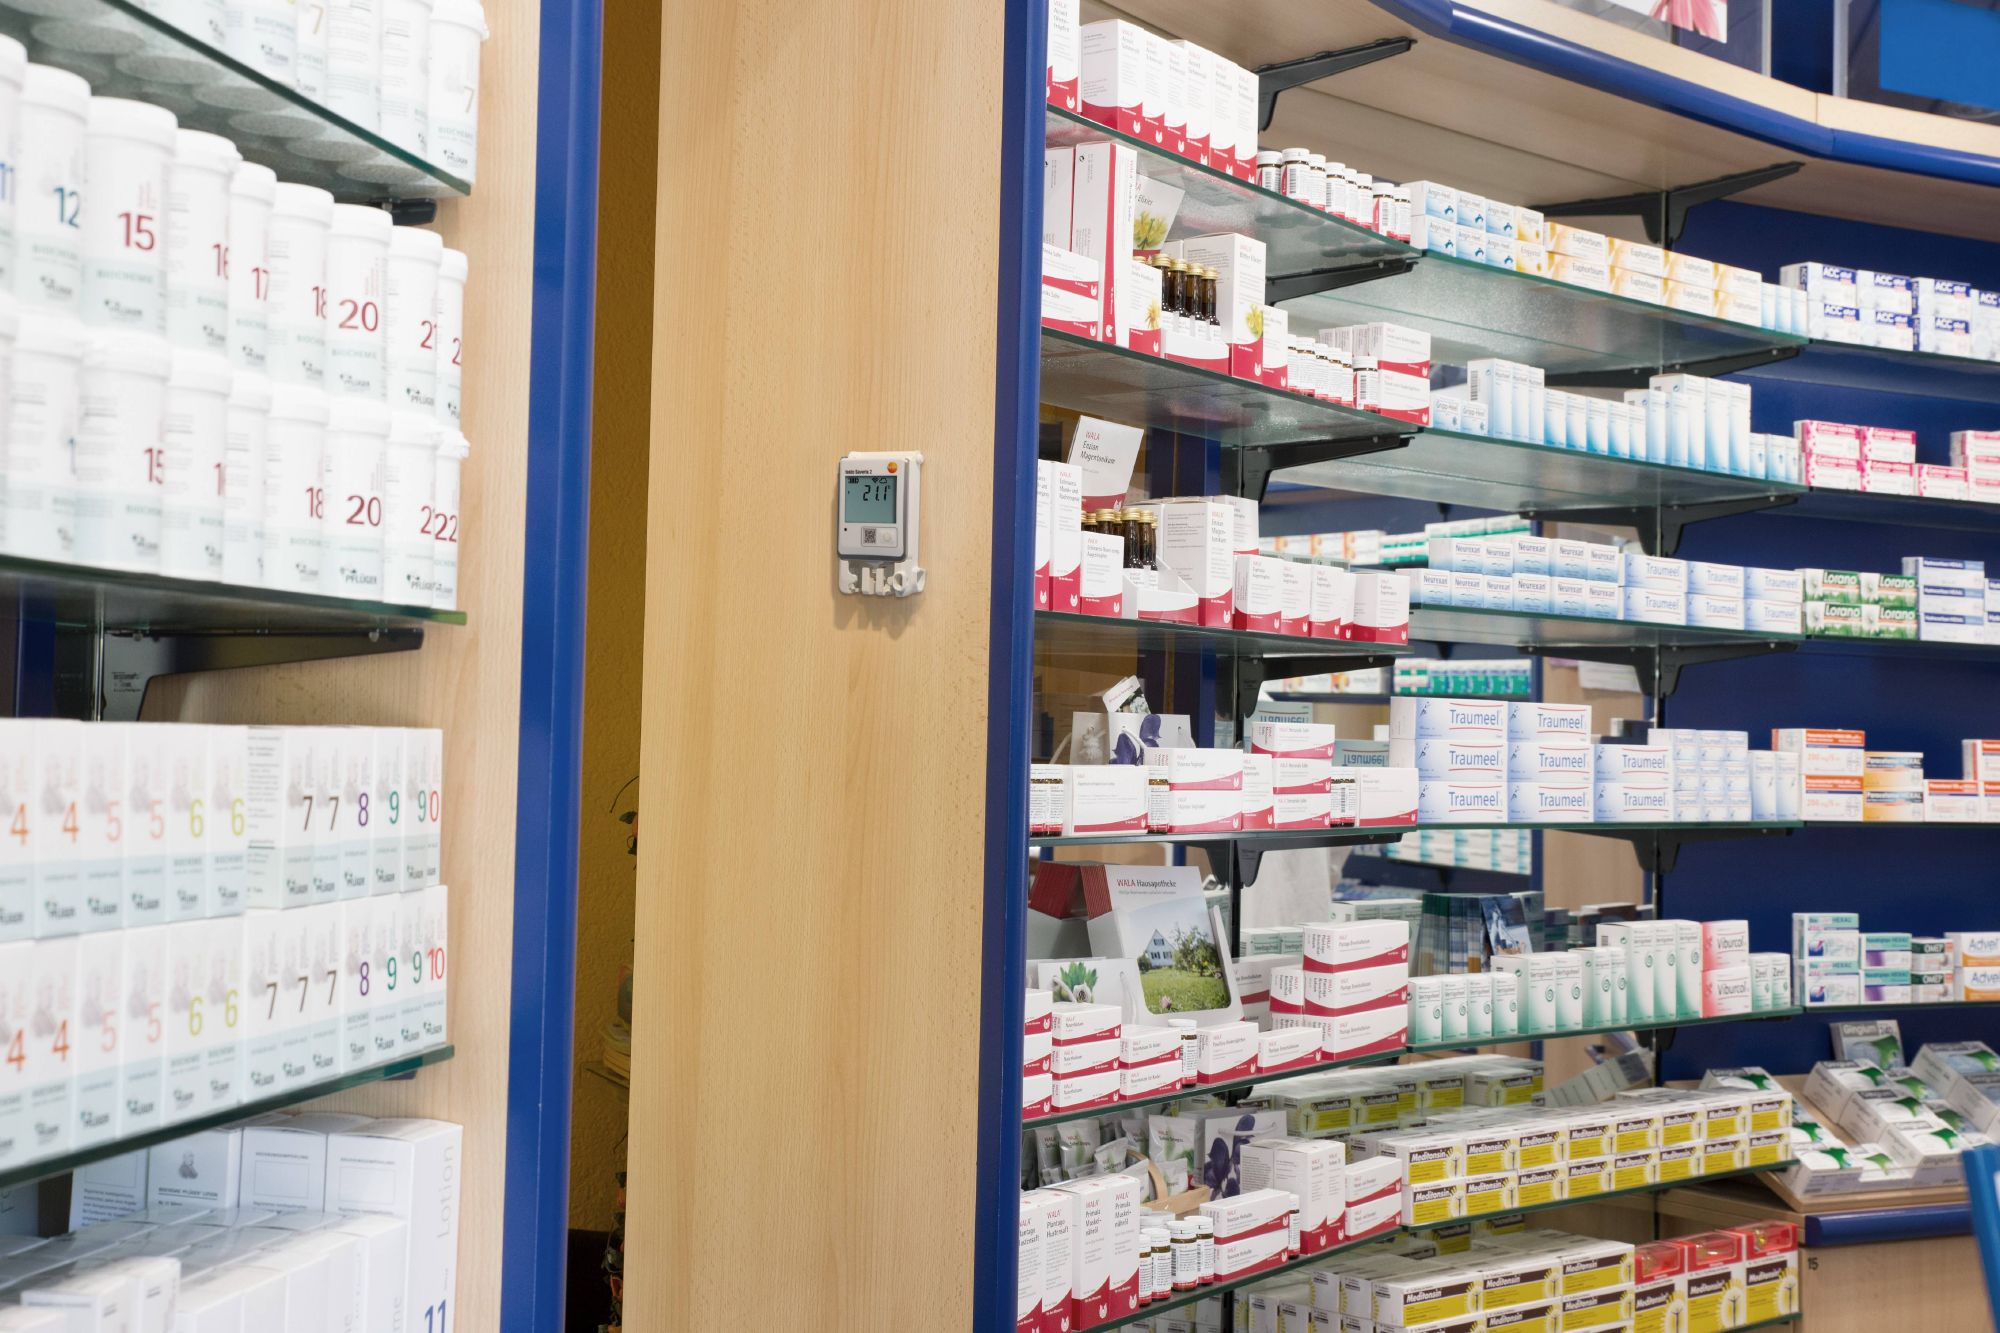 Temperature monitoring in pharmacies and hospitals